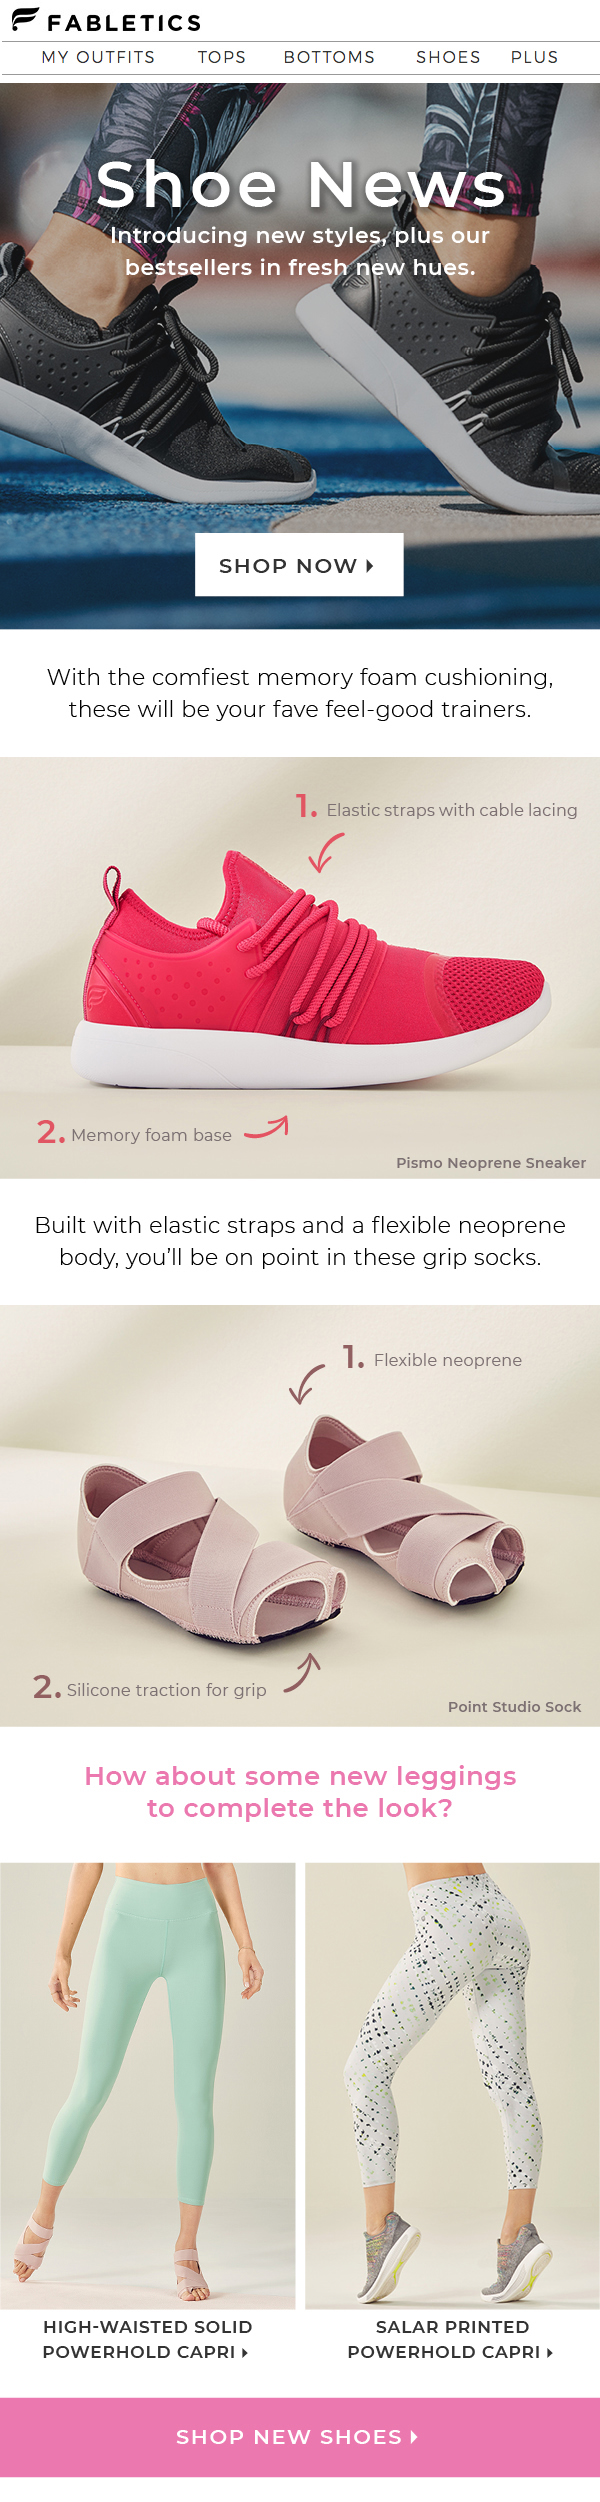 16_New_Shoes_Accessories-1.jpg